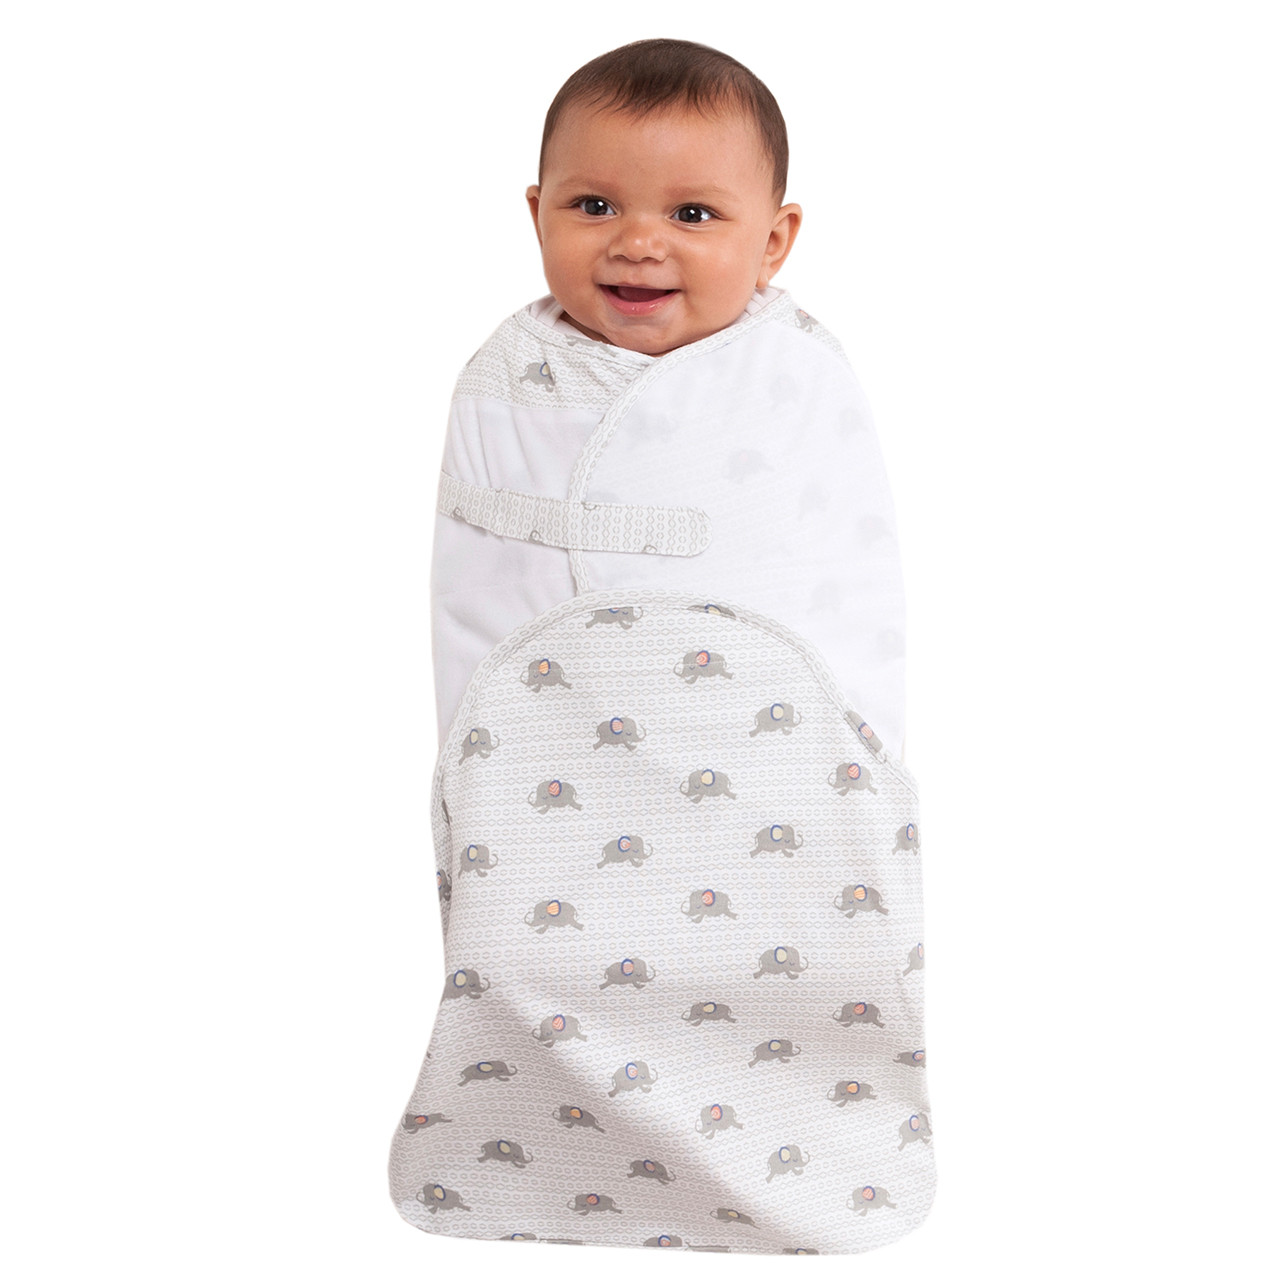 reputable site 1b76e 19632 HALO® SwaddleSure® adjustable swaddling pouch 100% Cotton | Elephant